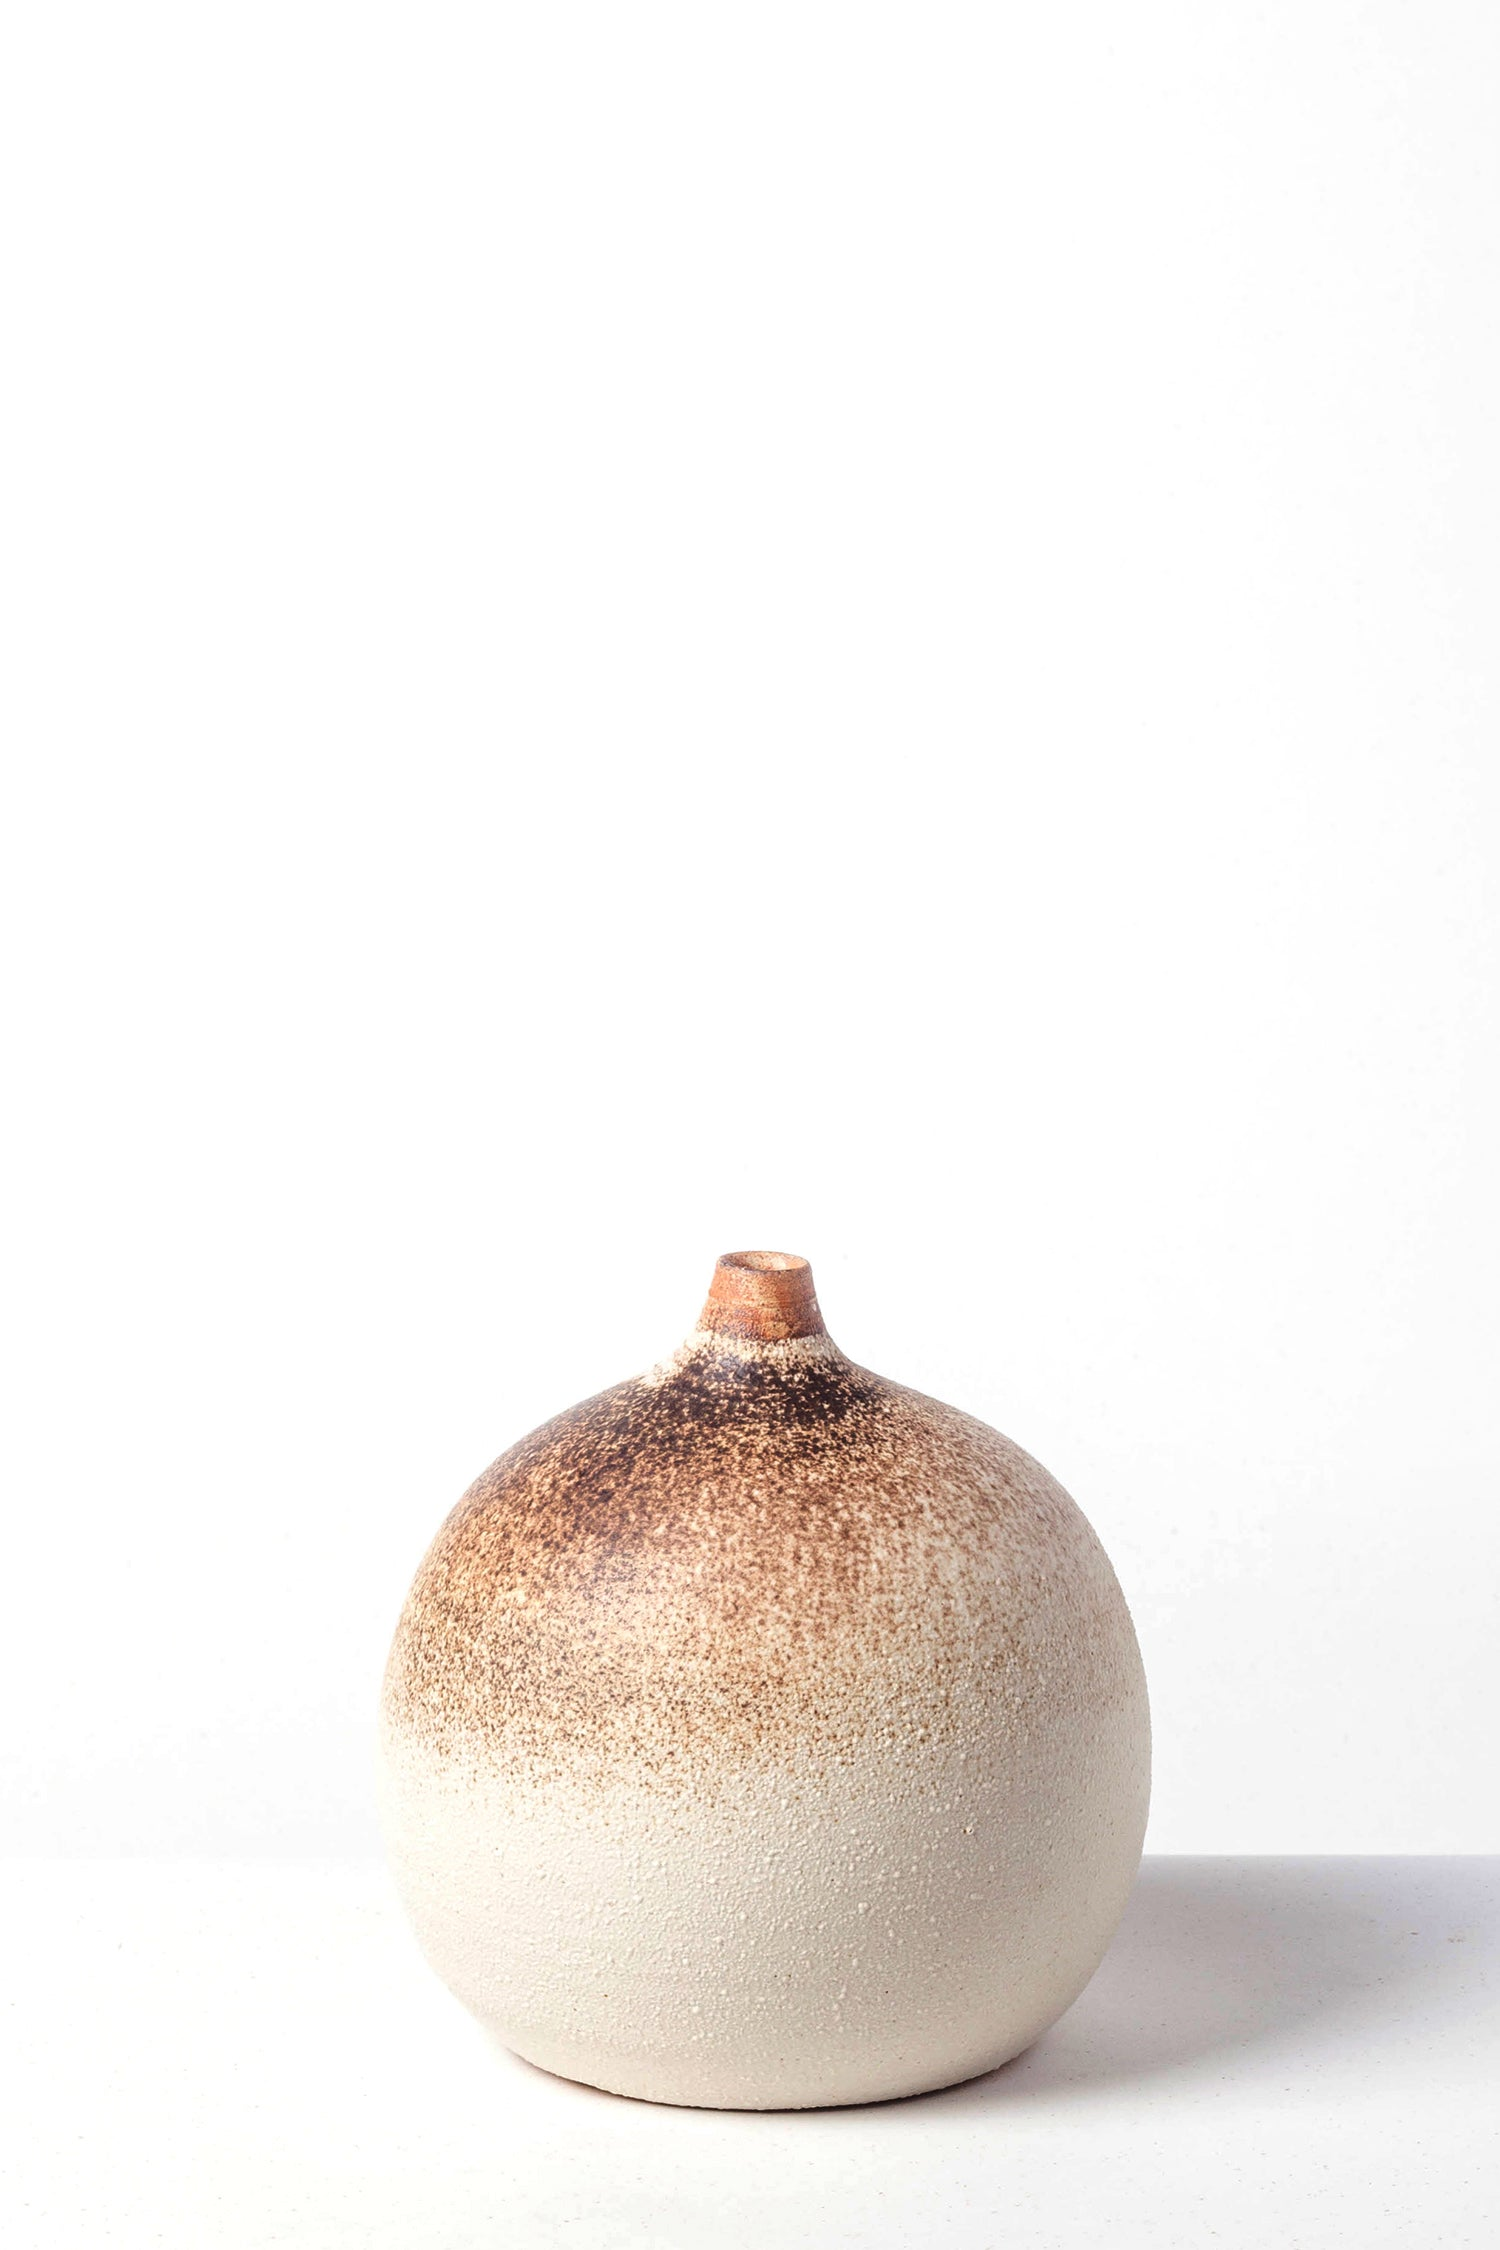 WHITE/BROWN VASE